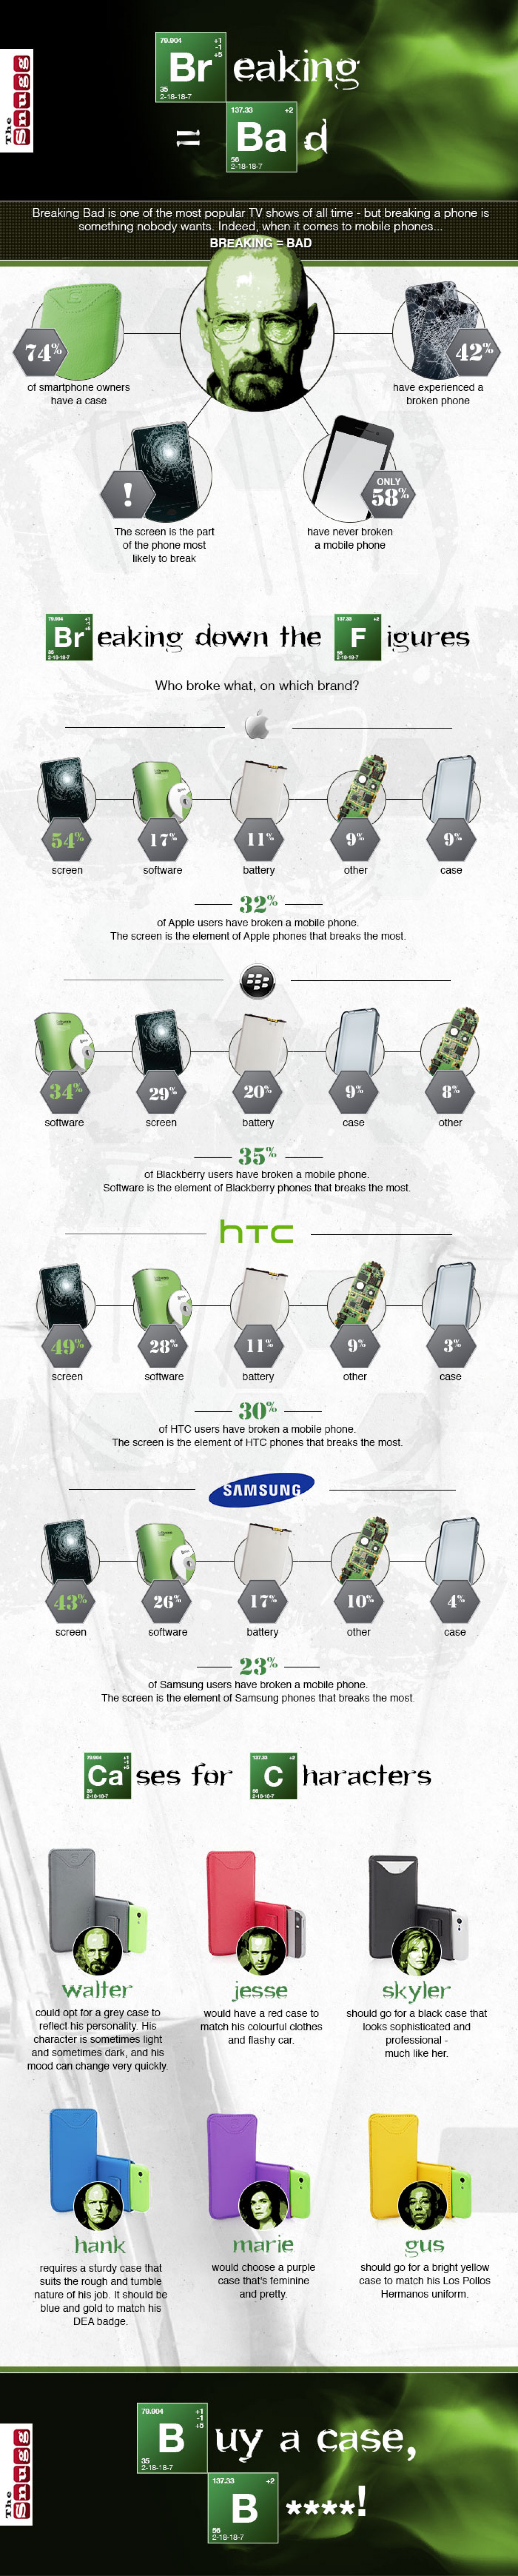 Breaking=Bad - The World's Most Breakable Smartphones Infographic